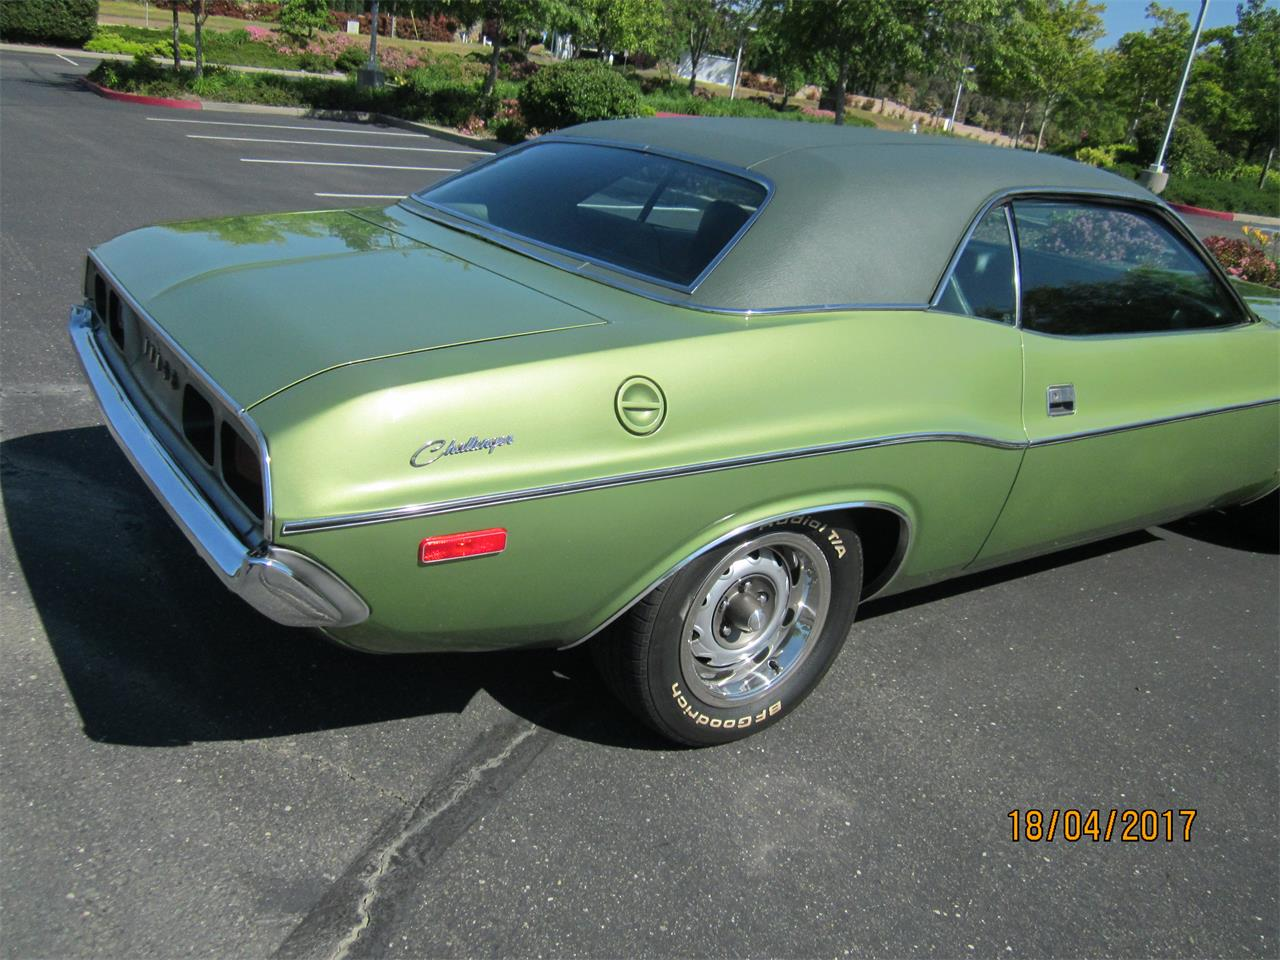 Large Picture of 1973 Dodge Challenger located in El Dorado Hills California - $16,200.00 - KXN2